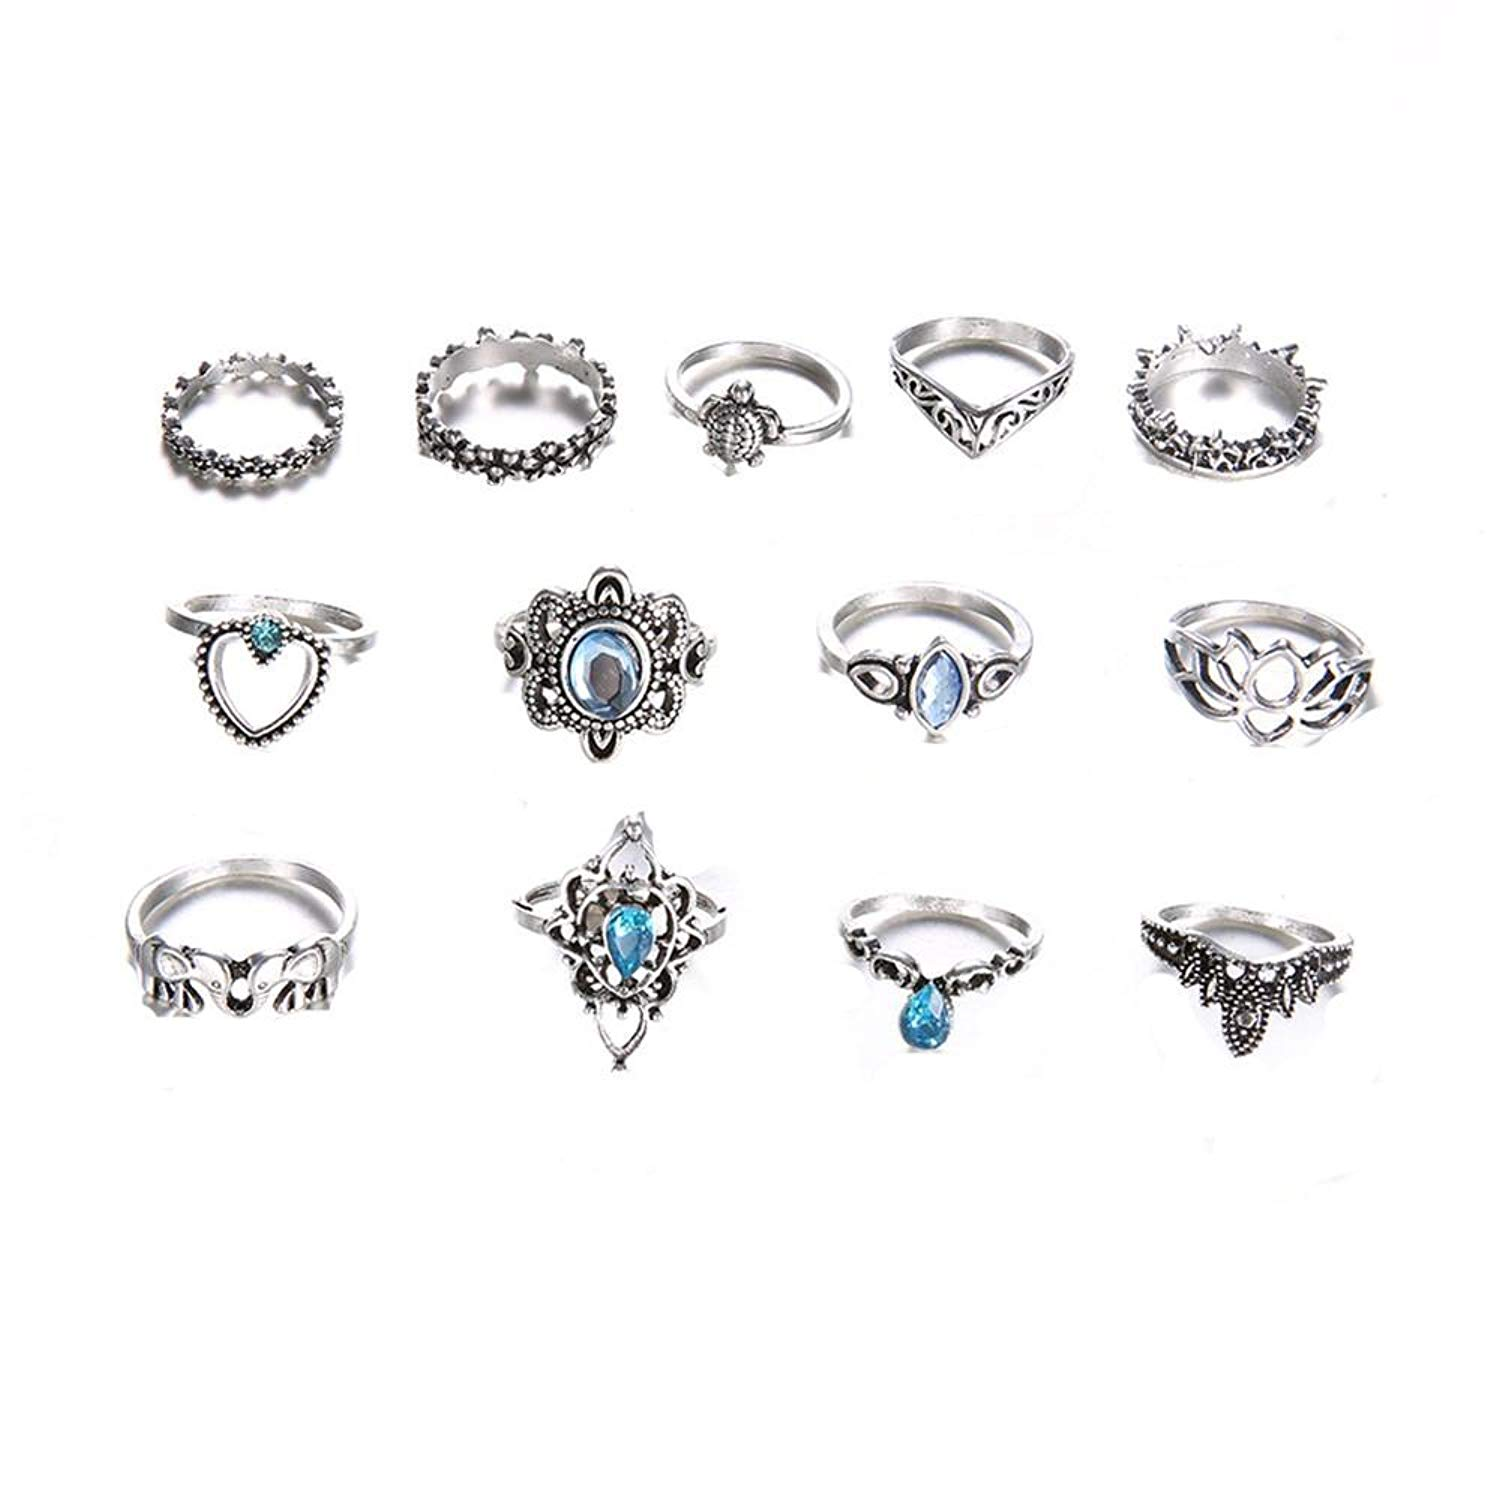 dac4811a0 Get Quotations · Women Bohemian Vintage Silver Crystal Stack Rings Above  Knuckle Rings Set